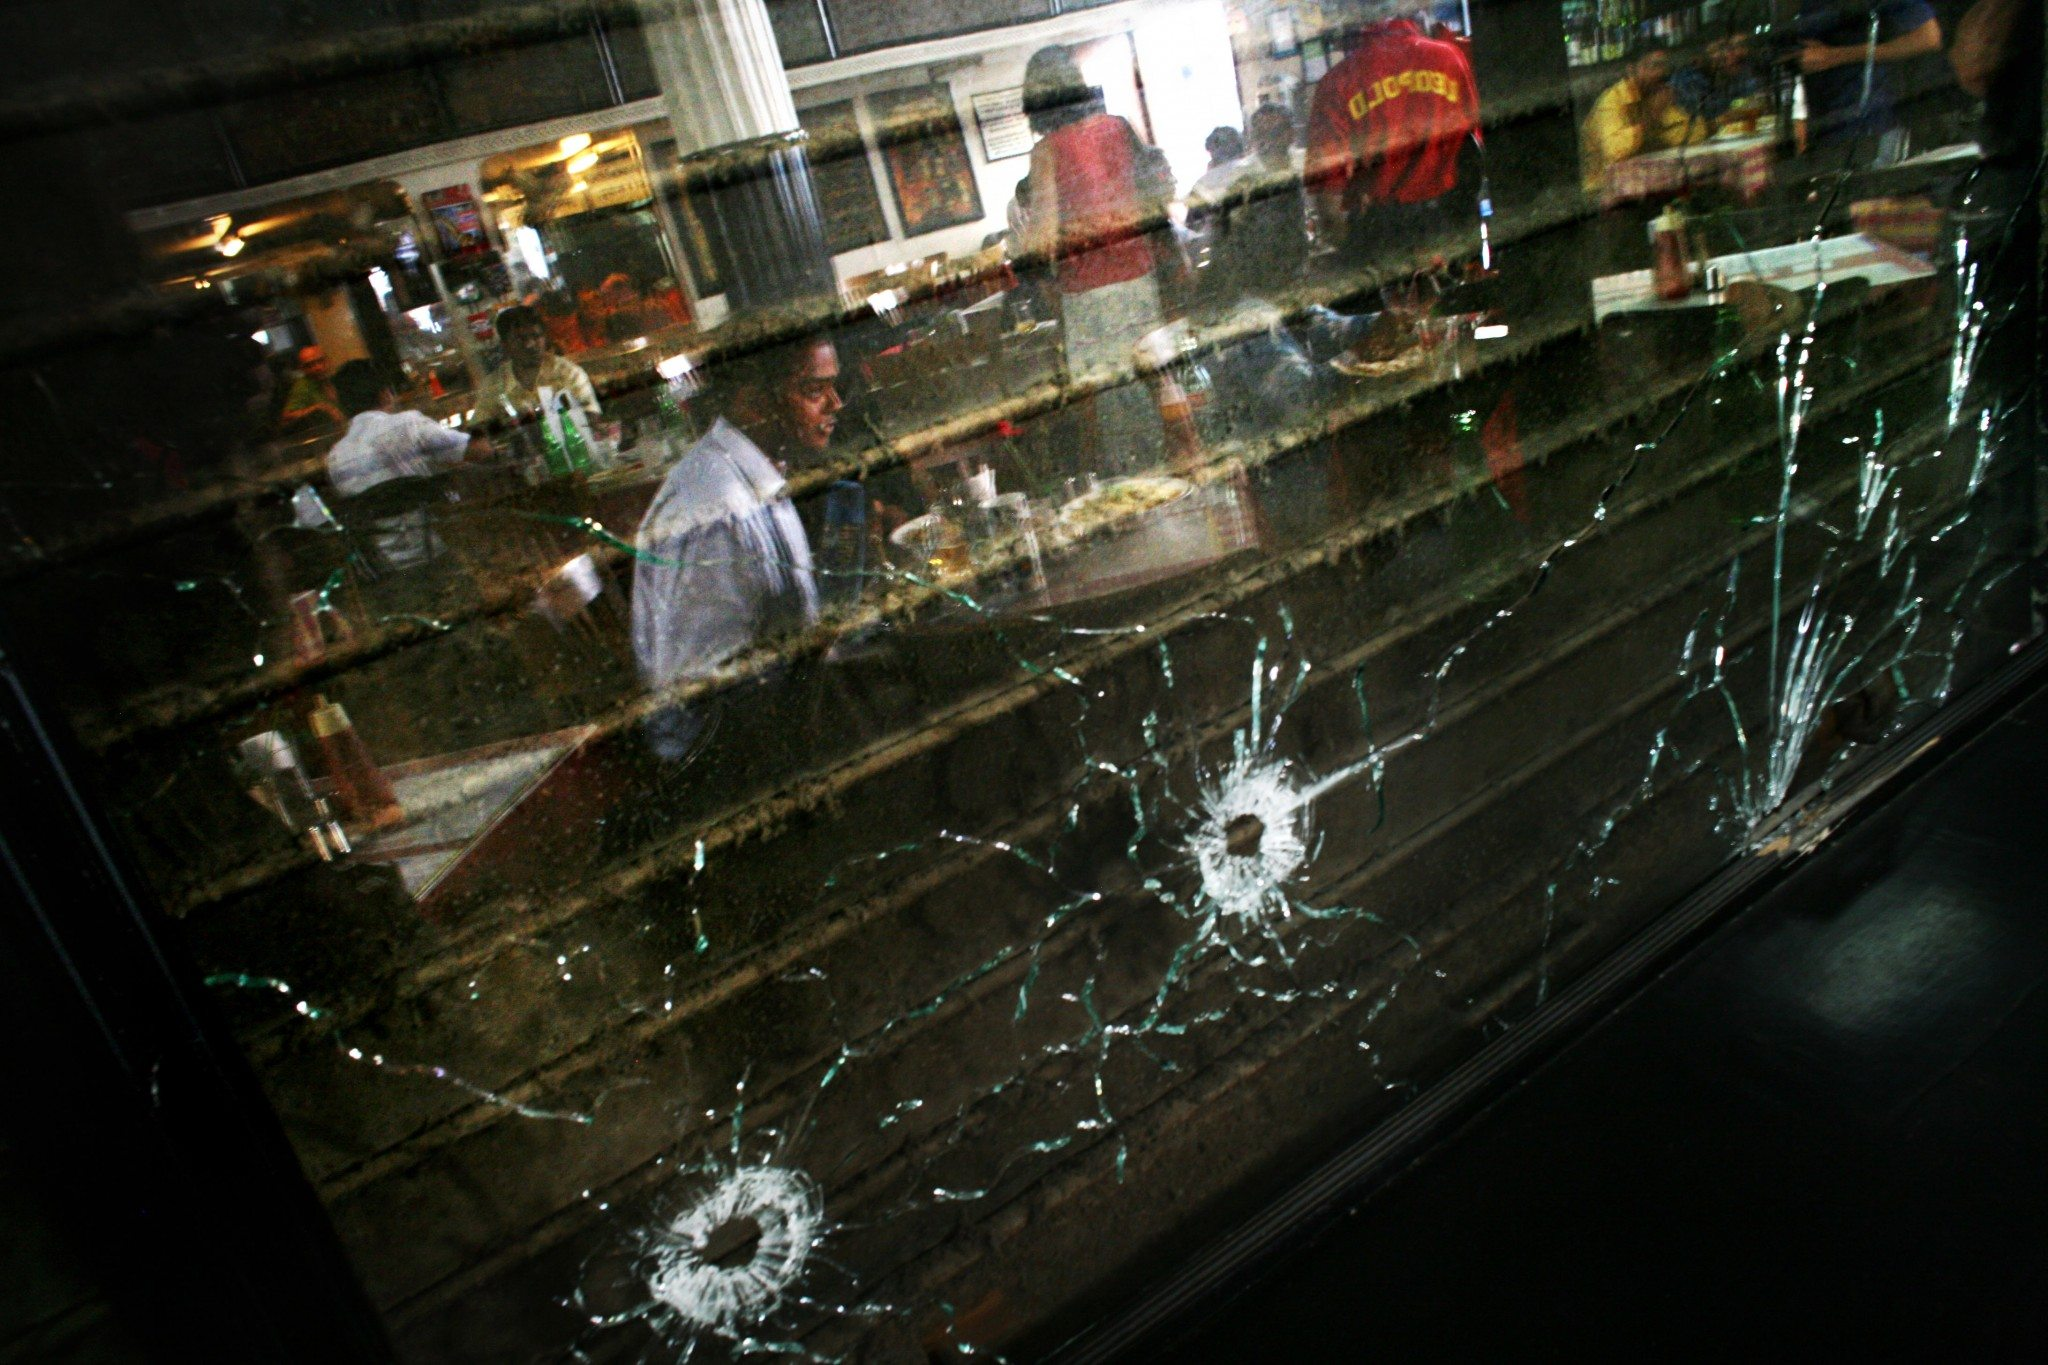 MUMBAI (BOMBAY), INDIA - DECEMBER 02: (ISRAEL OUT) A man is reflected in a window with bullet holes at the Leopold Cafe after it reopened on December, 02, 2008 in Mumbai, India. The Cafe was one of several locations targeted by multiple coordinated terrorist attacks on November 26. The attacks ended on November 29, with at least 173 people killed in the attacks. (Photo by Uriel Sinai/Getty Images)